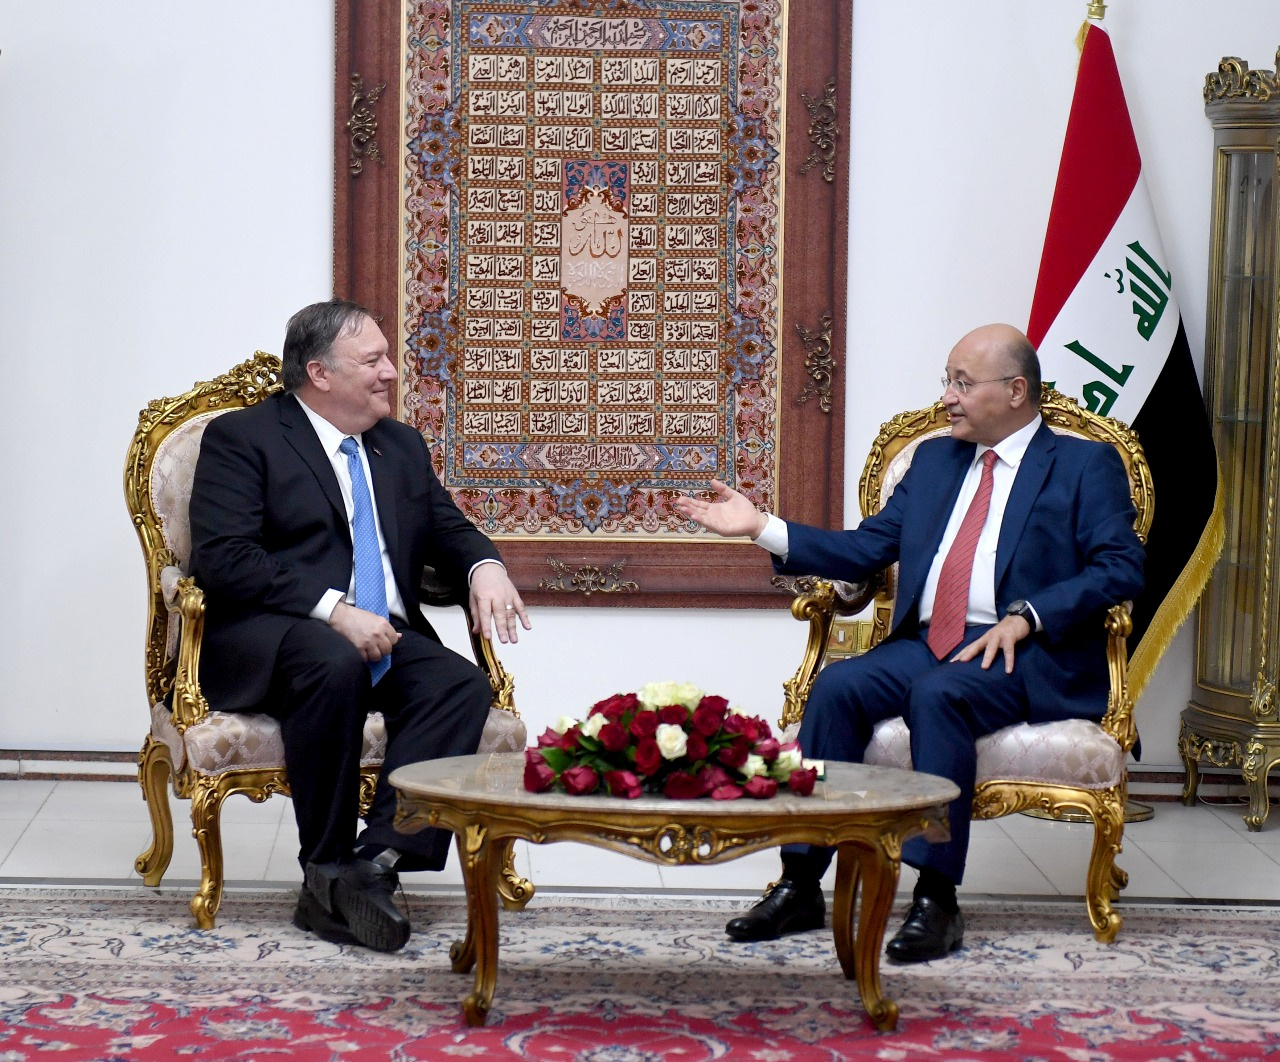 Iraq's President Barham Salih meets with U.S. Secretary of State Mike Pompeo in Baghdad